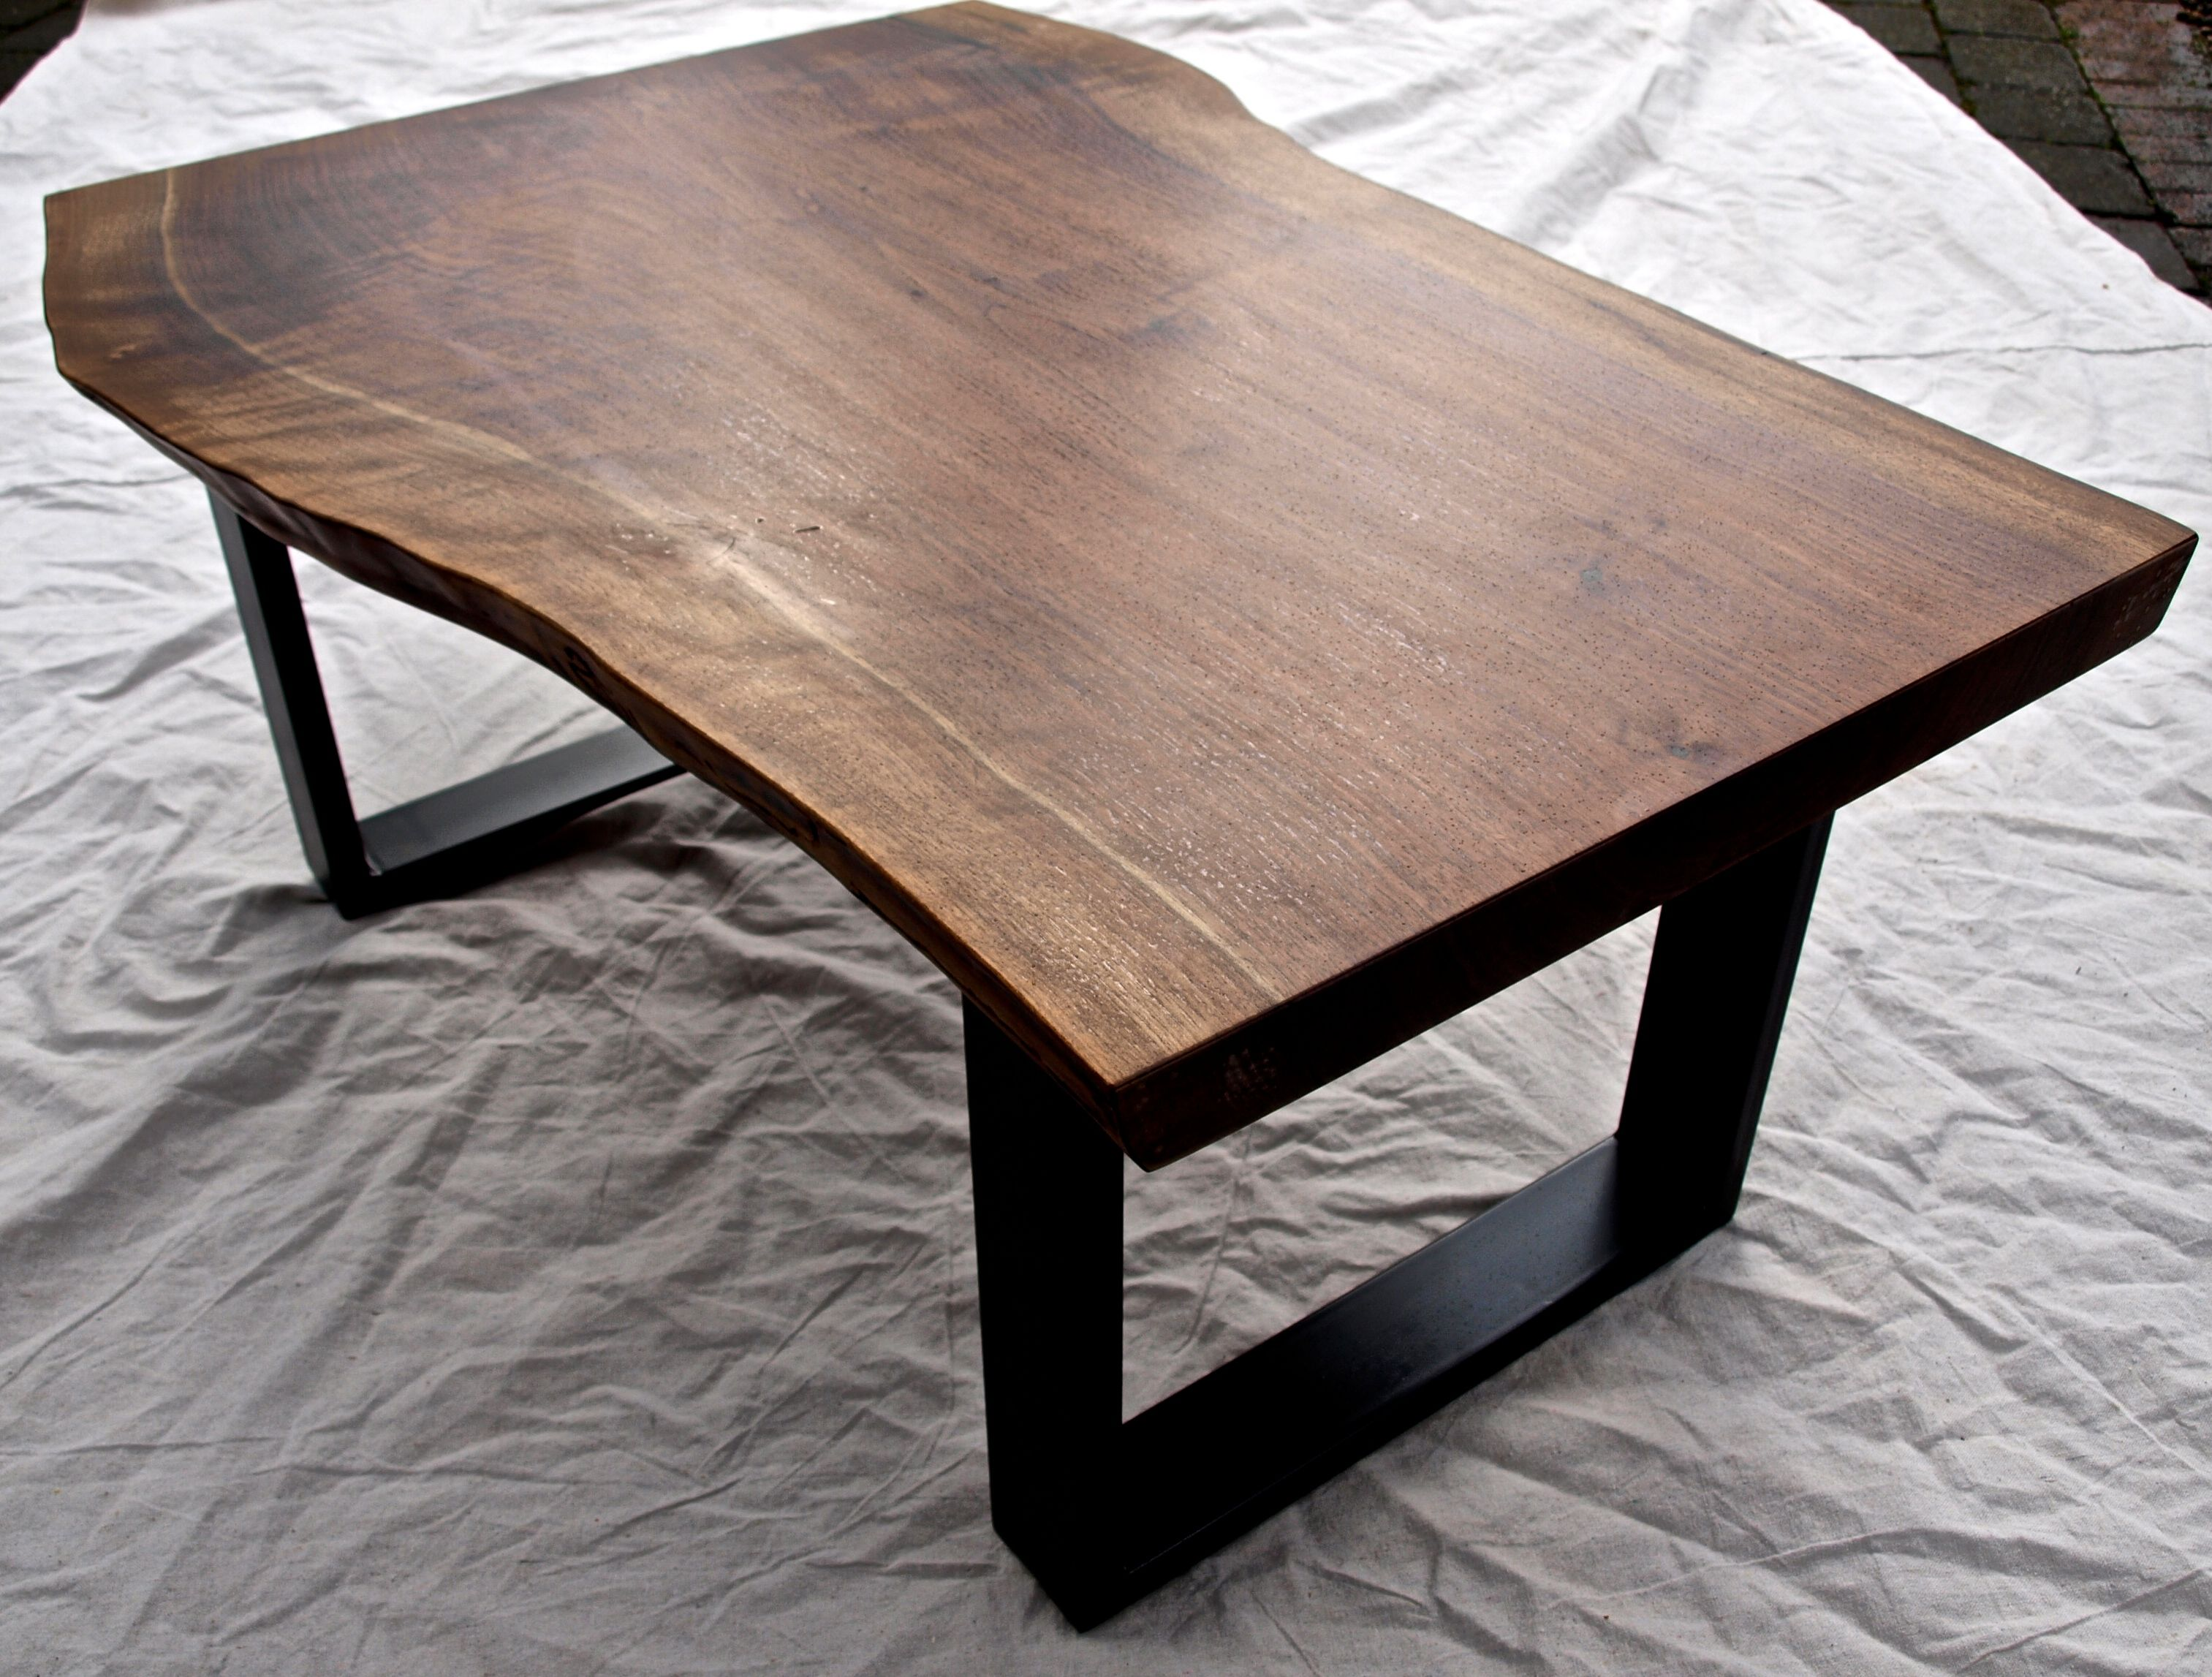 coffee table ana white rustic diy projects target end hand crafted live edge walnut witness tree studios oak tables sets and ikea for ashley furniture glass full size acrylic